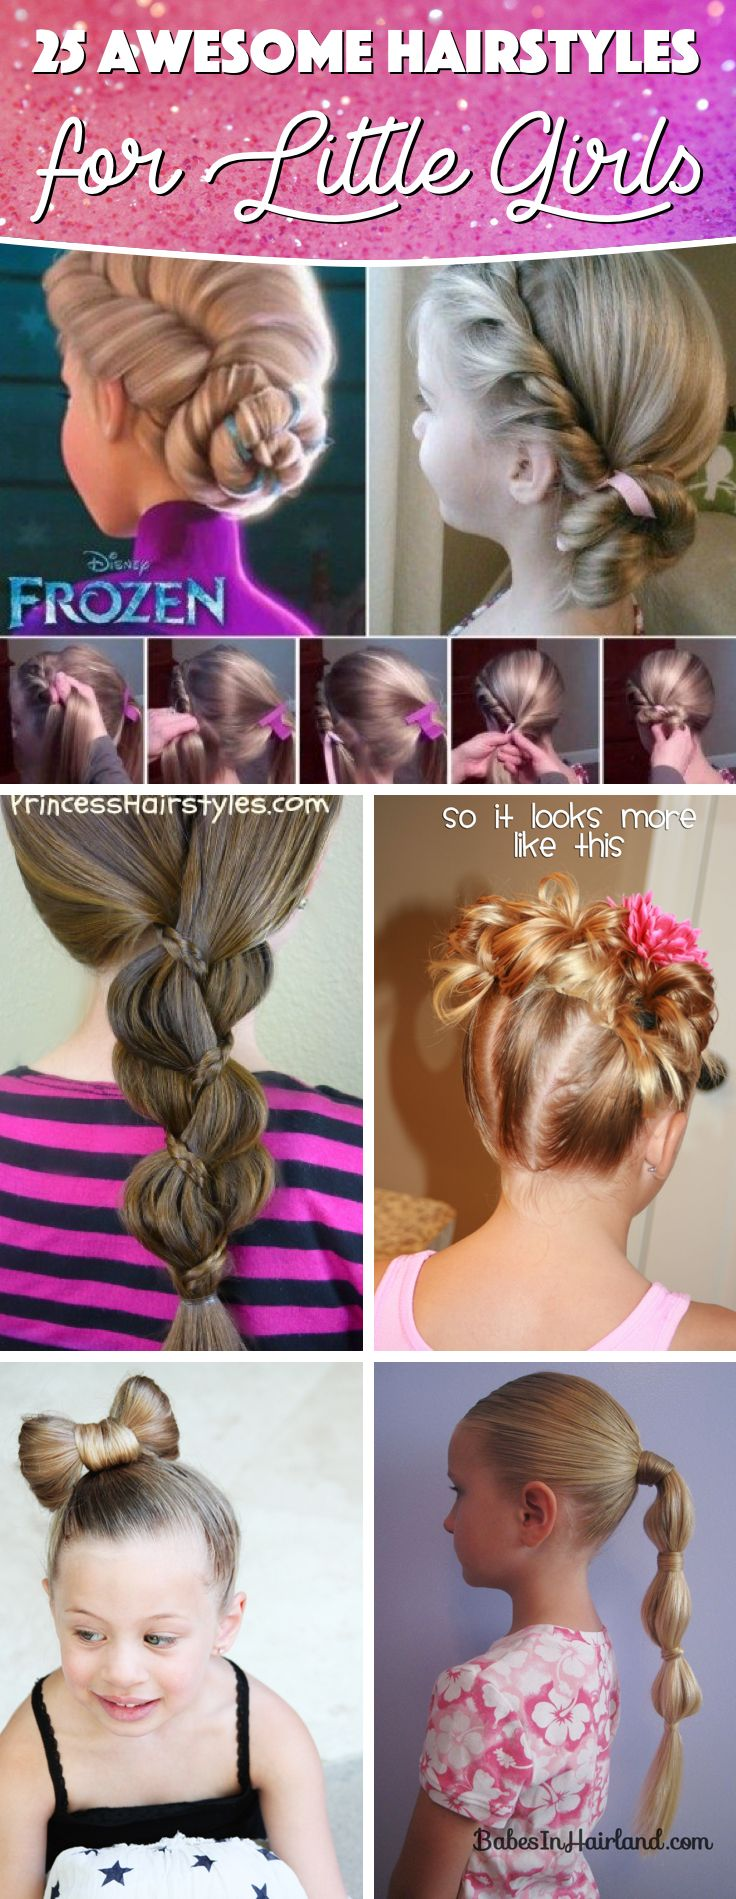 awesome hairstyles for little girls making them look absolutely